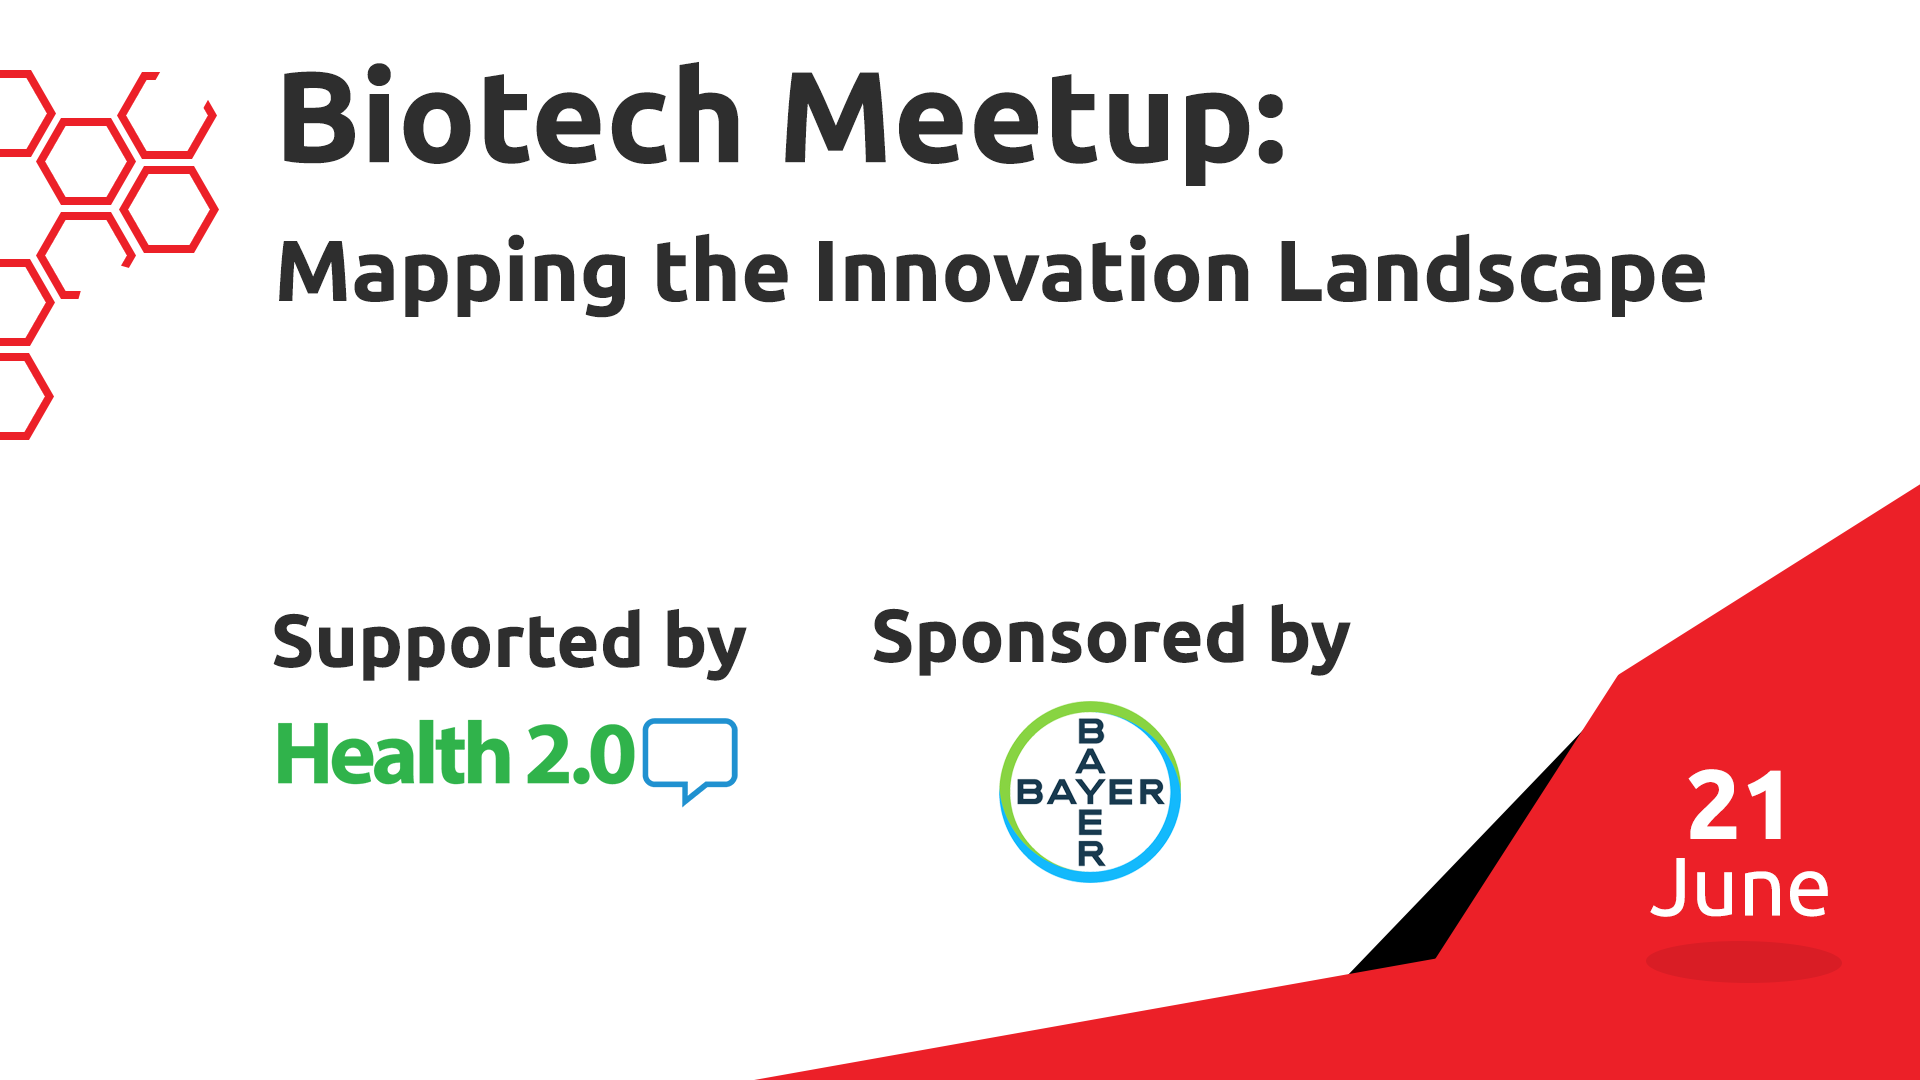 Biotech Meetup: Mapping the innovation landscape